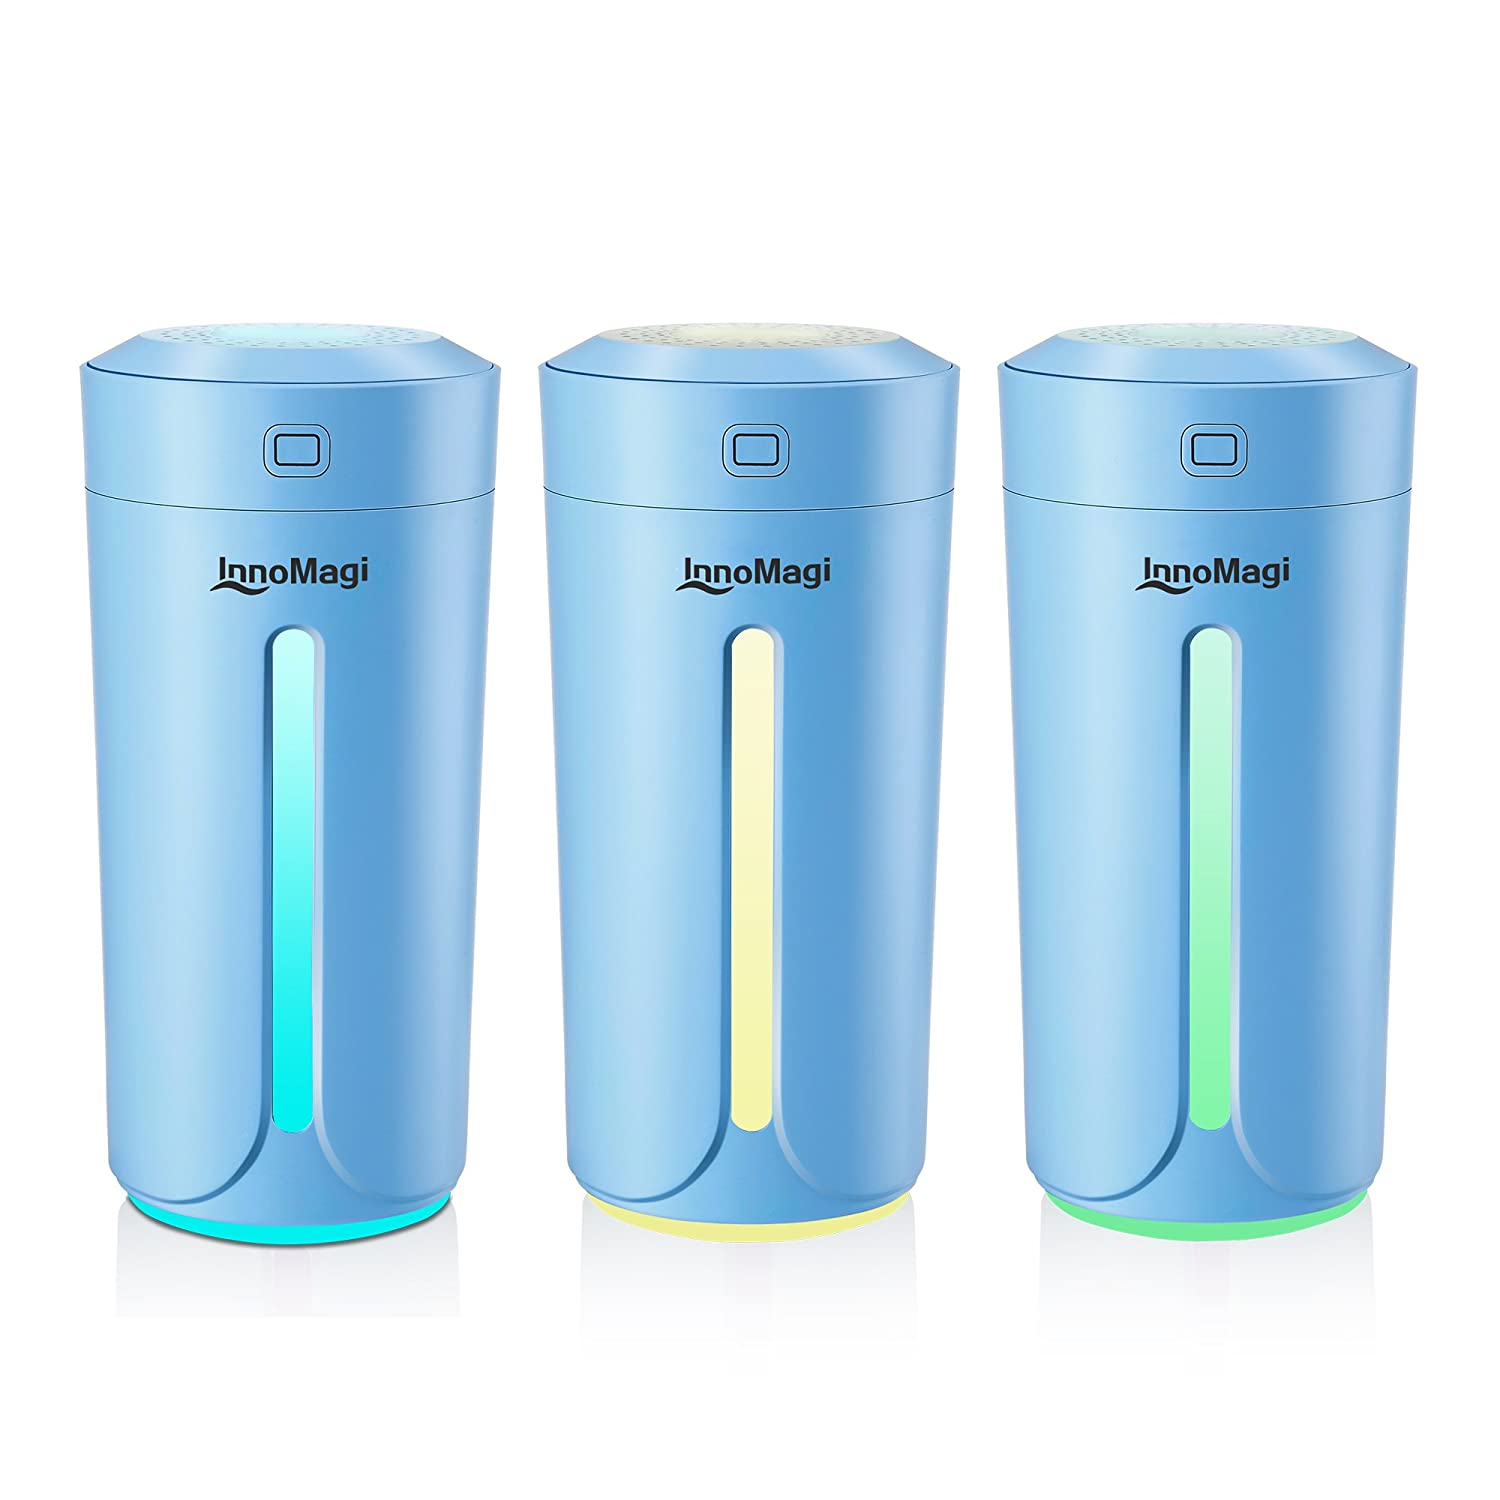 Air Humidifier, Baby Humidifier Best Aroma Diffuser with 7 Colorful Lights, Cool Mist Humidifiers Ultrasonic Aroma Aromatherapy Diffusers for Car, Yoga, Office, Spa, Baby Room - InnoMagi (230ml-Blue)